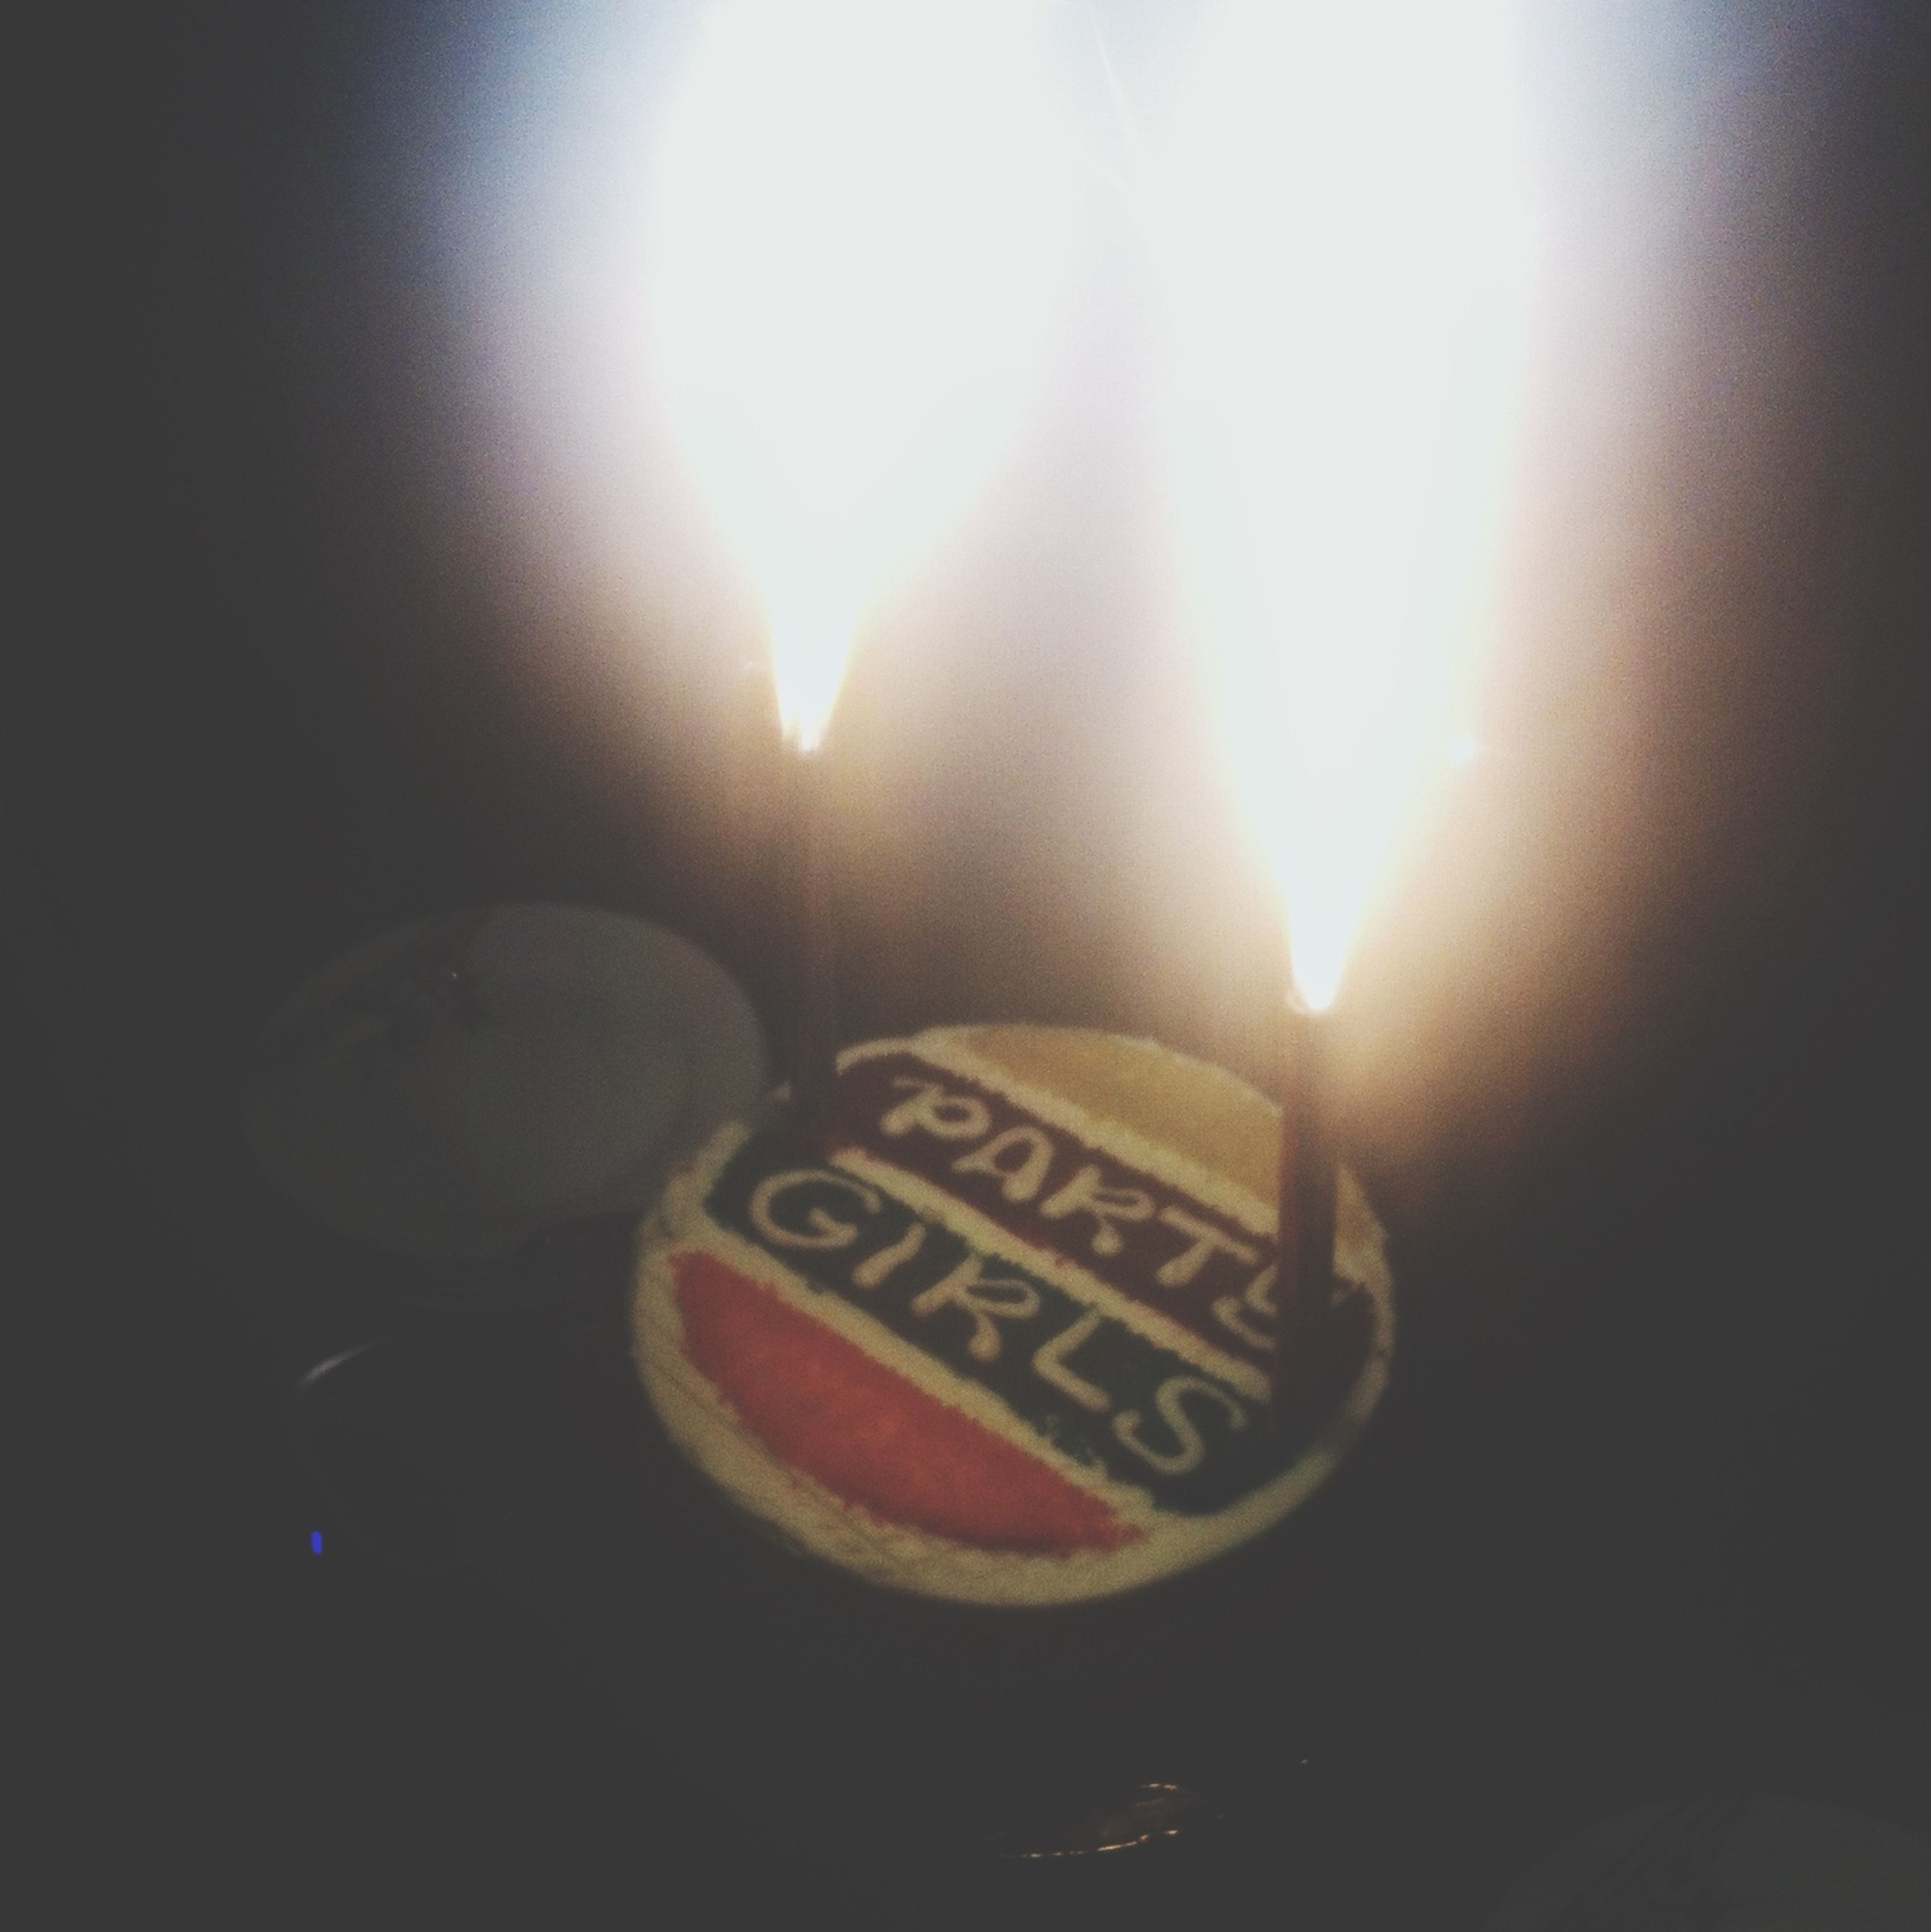 indoors, text, close-up, still life, western script, no people, glowing, candle, burning, art, communication, illuminated, art and craft, flame, creativity, sunlight, human representation, heat - temperature, single object, table